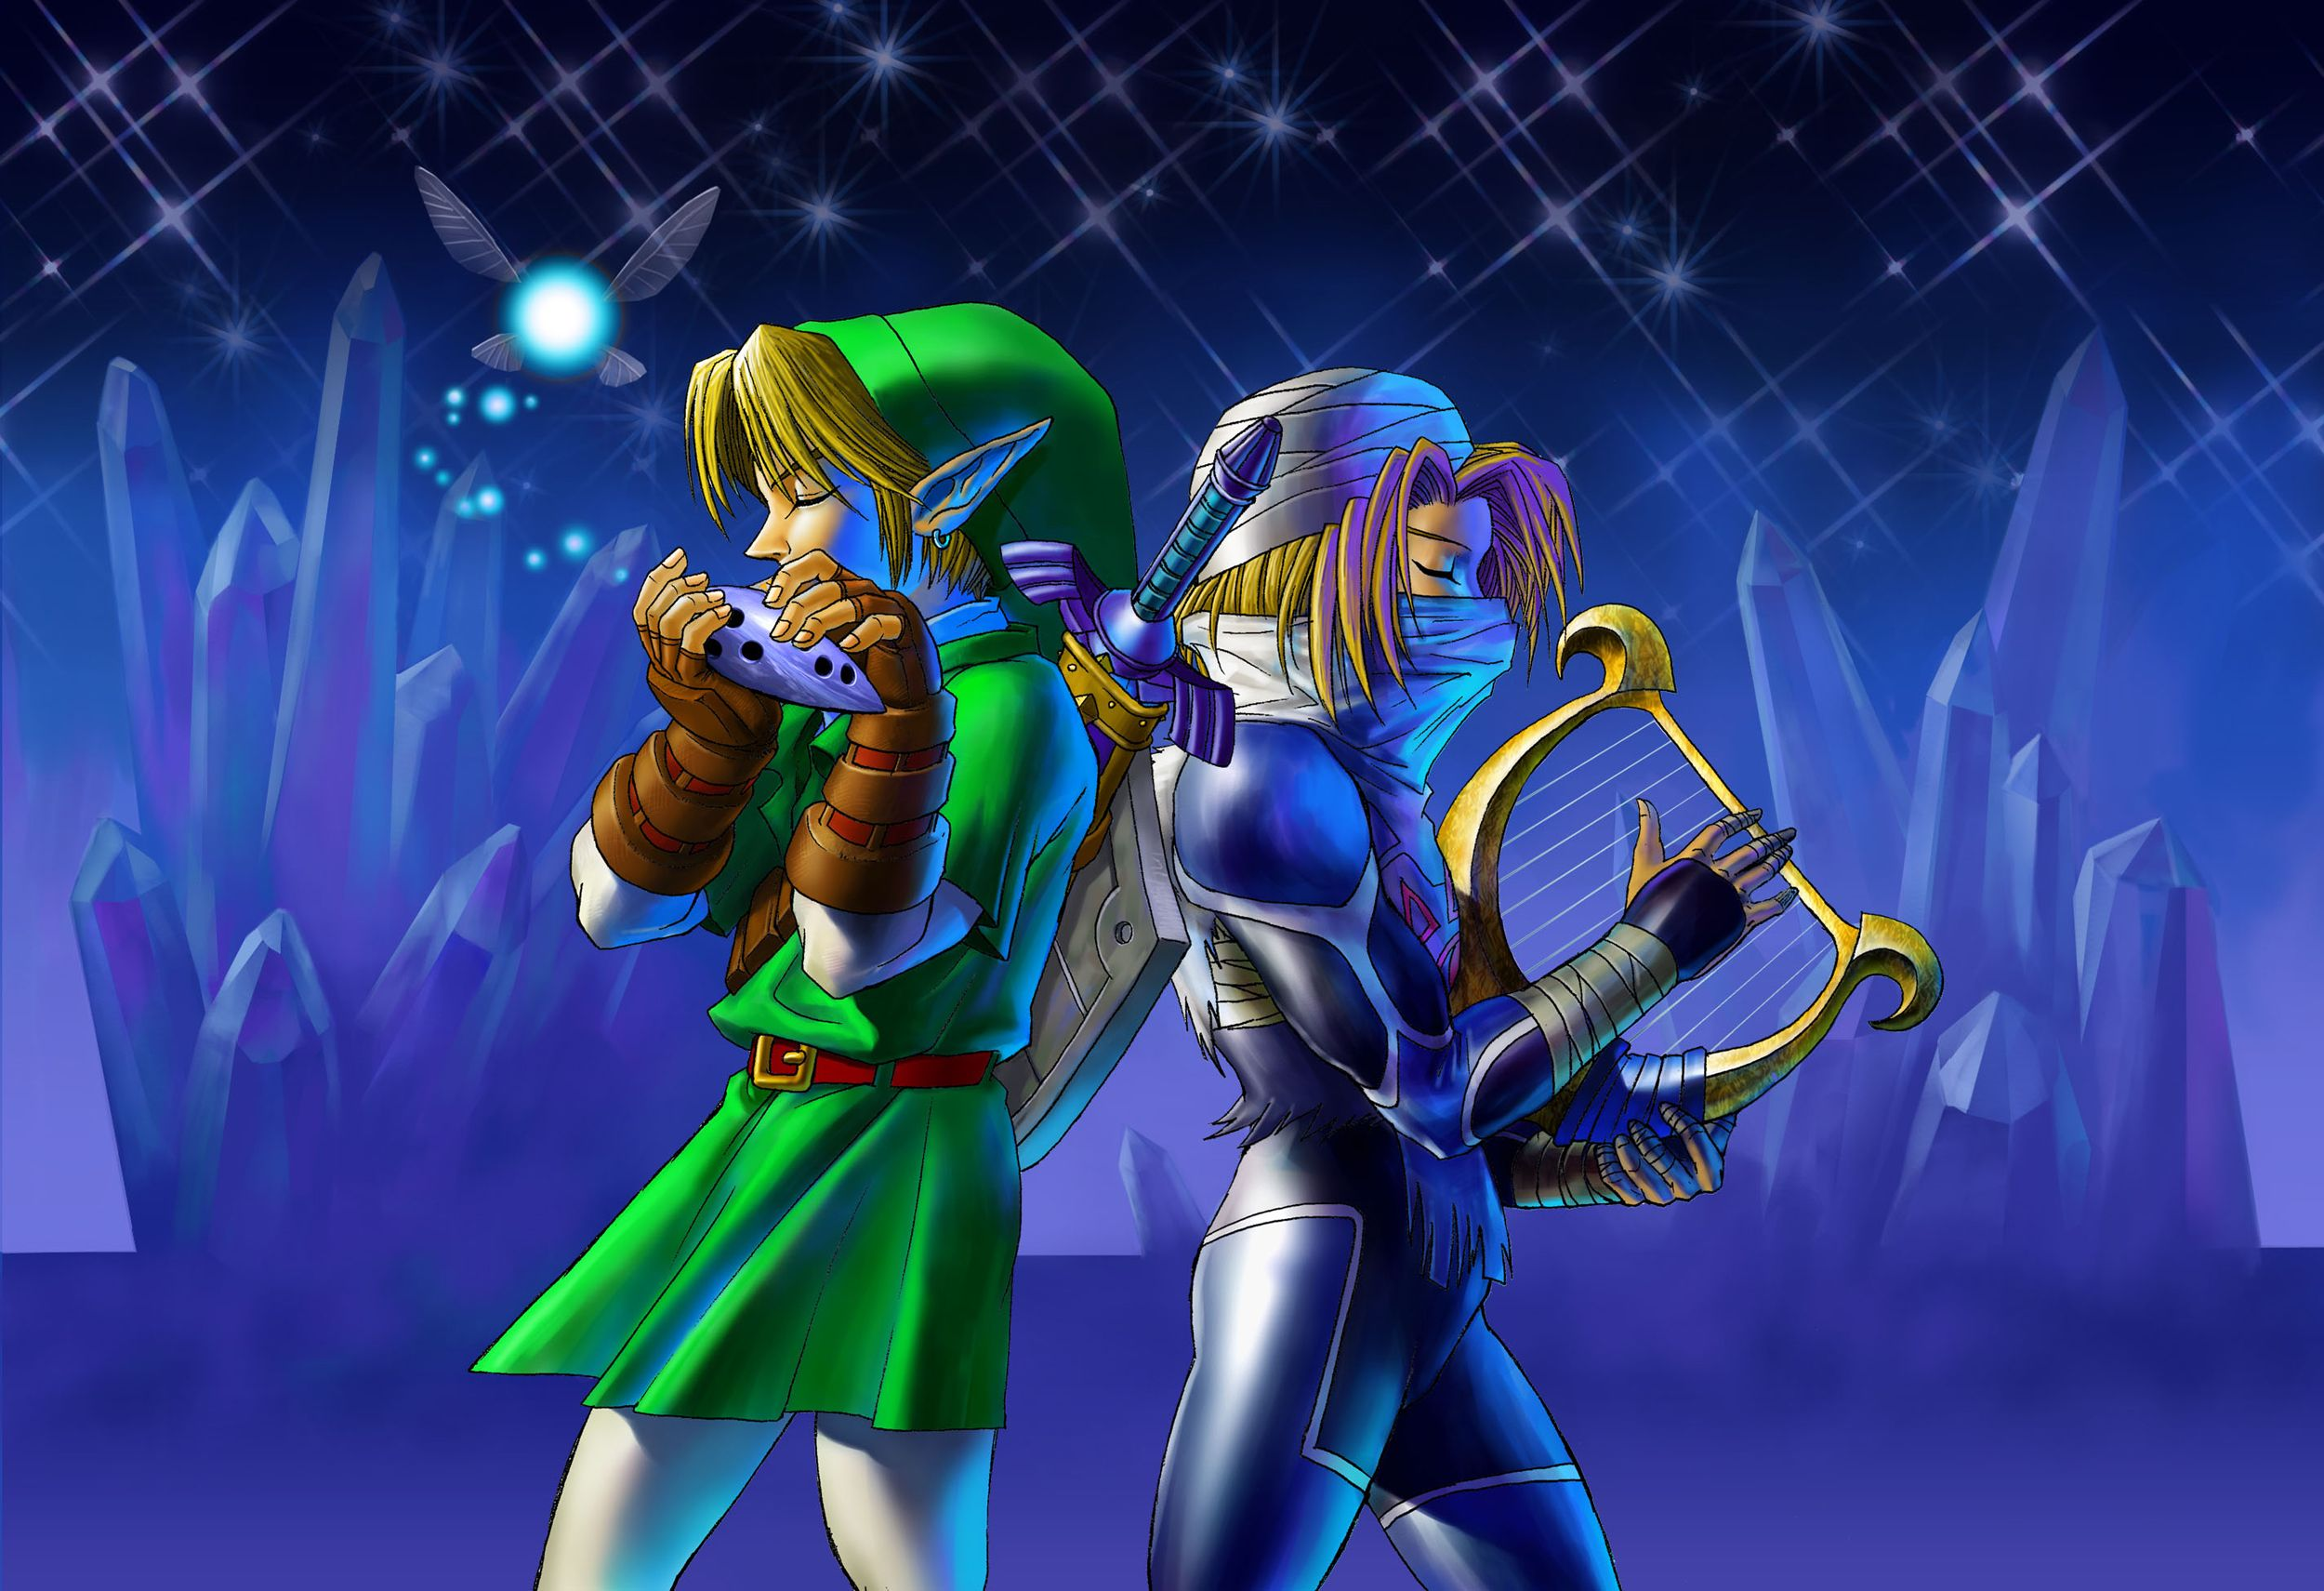 Legend Of Zelda Ocarina Of Time Wallpapers High Definition For